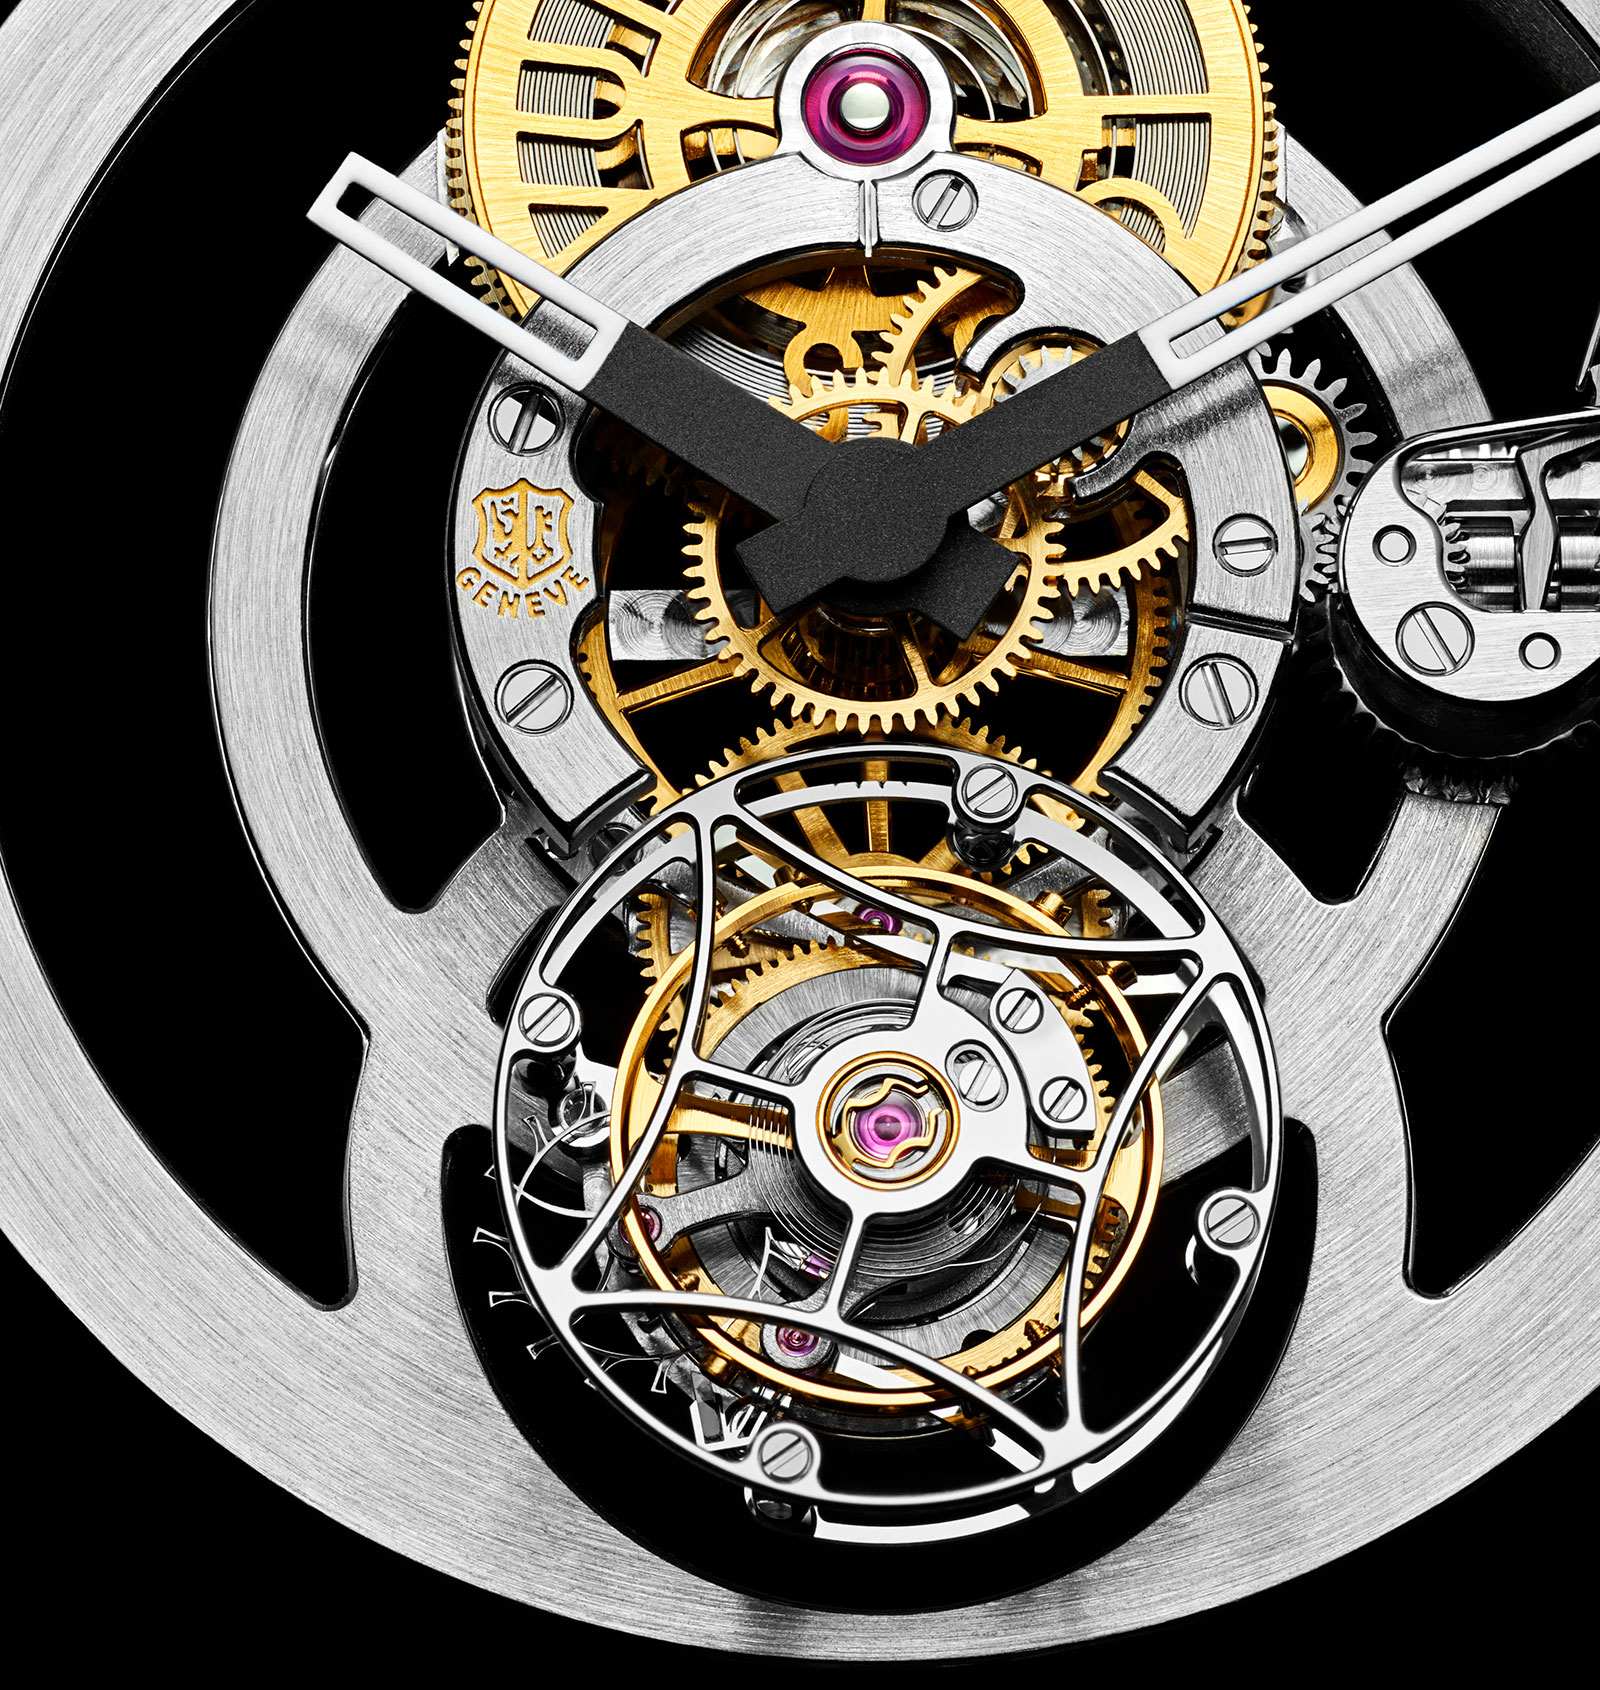 Stripped down: 5 skeletonised watches that bare it all